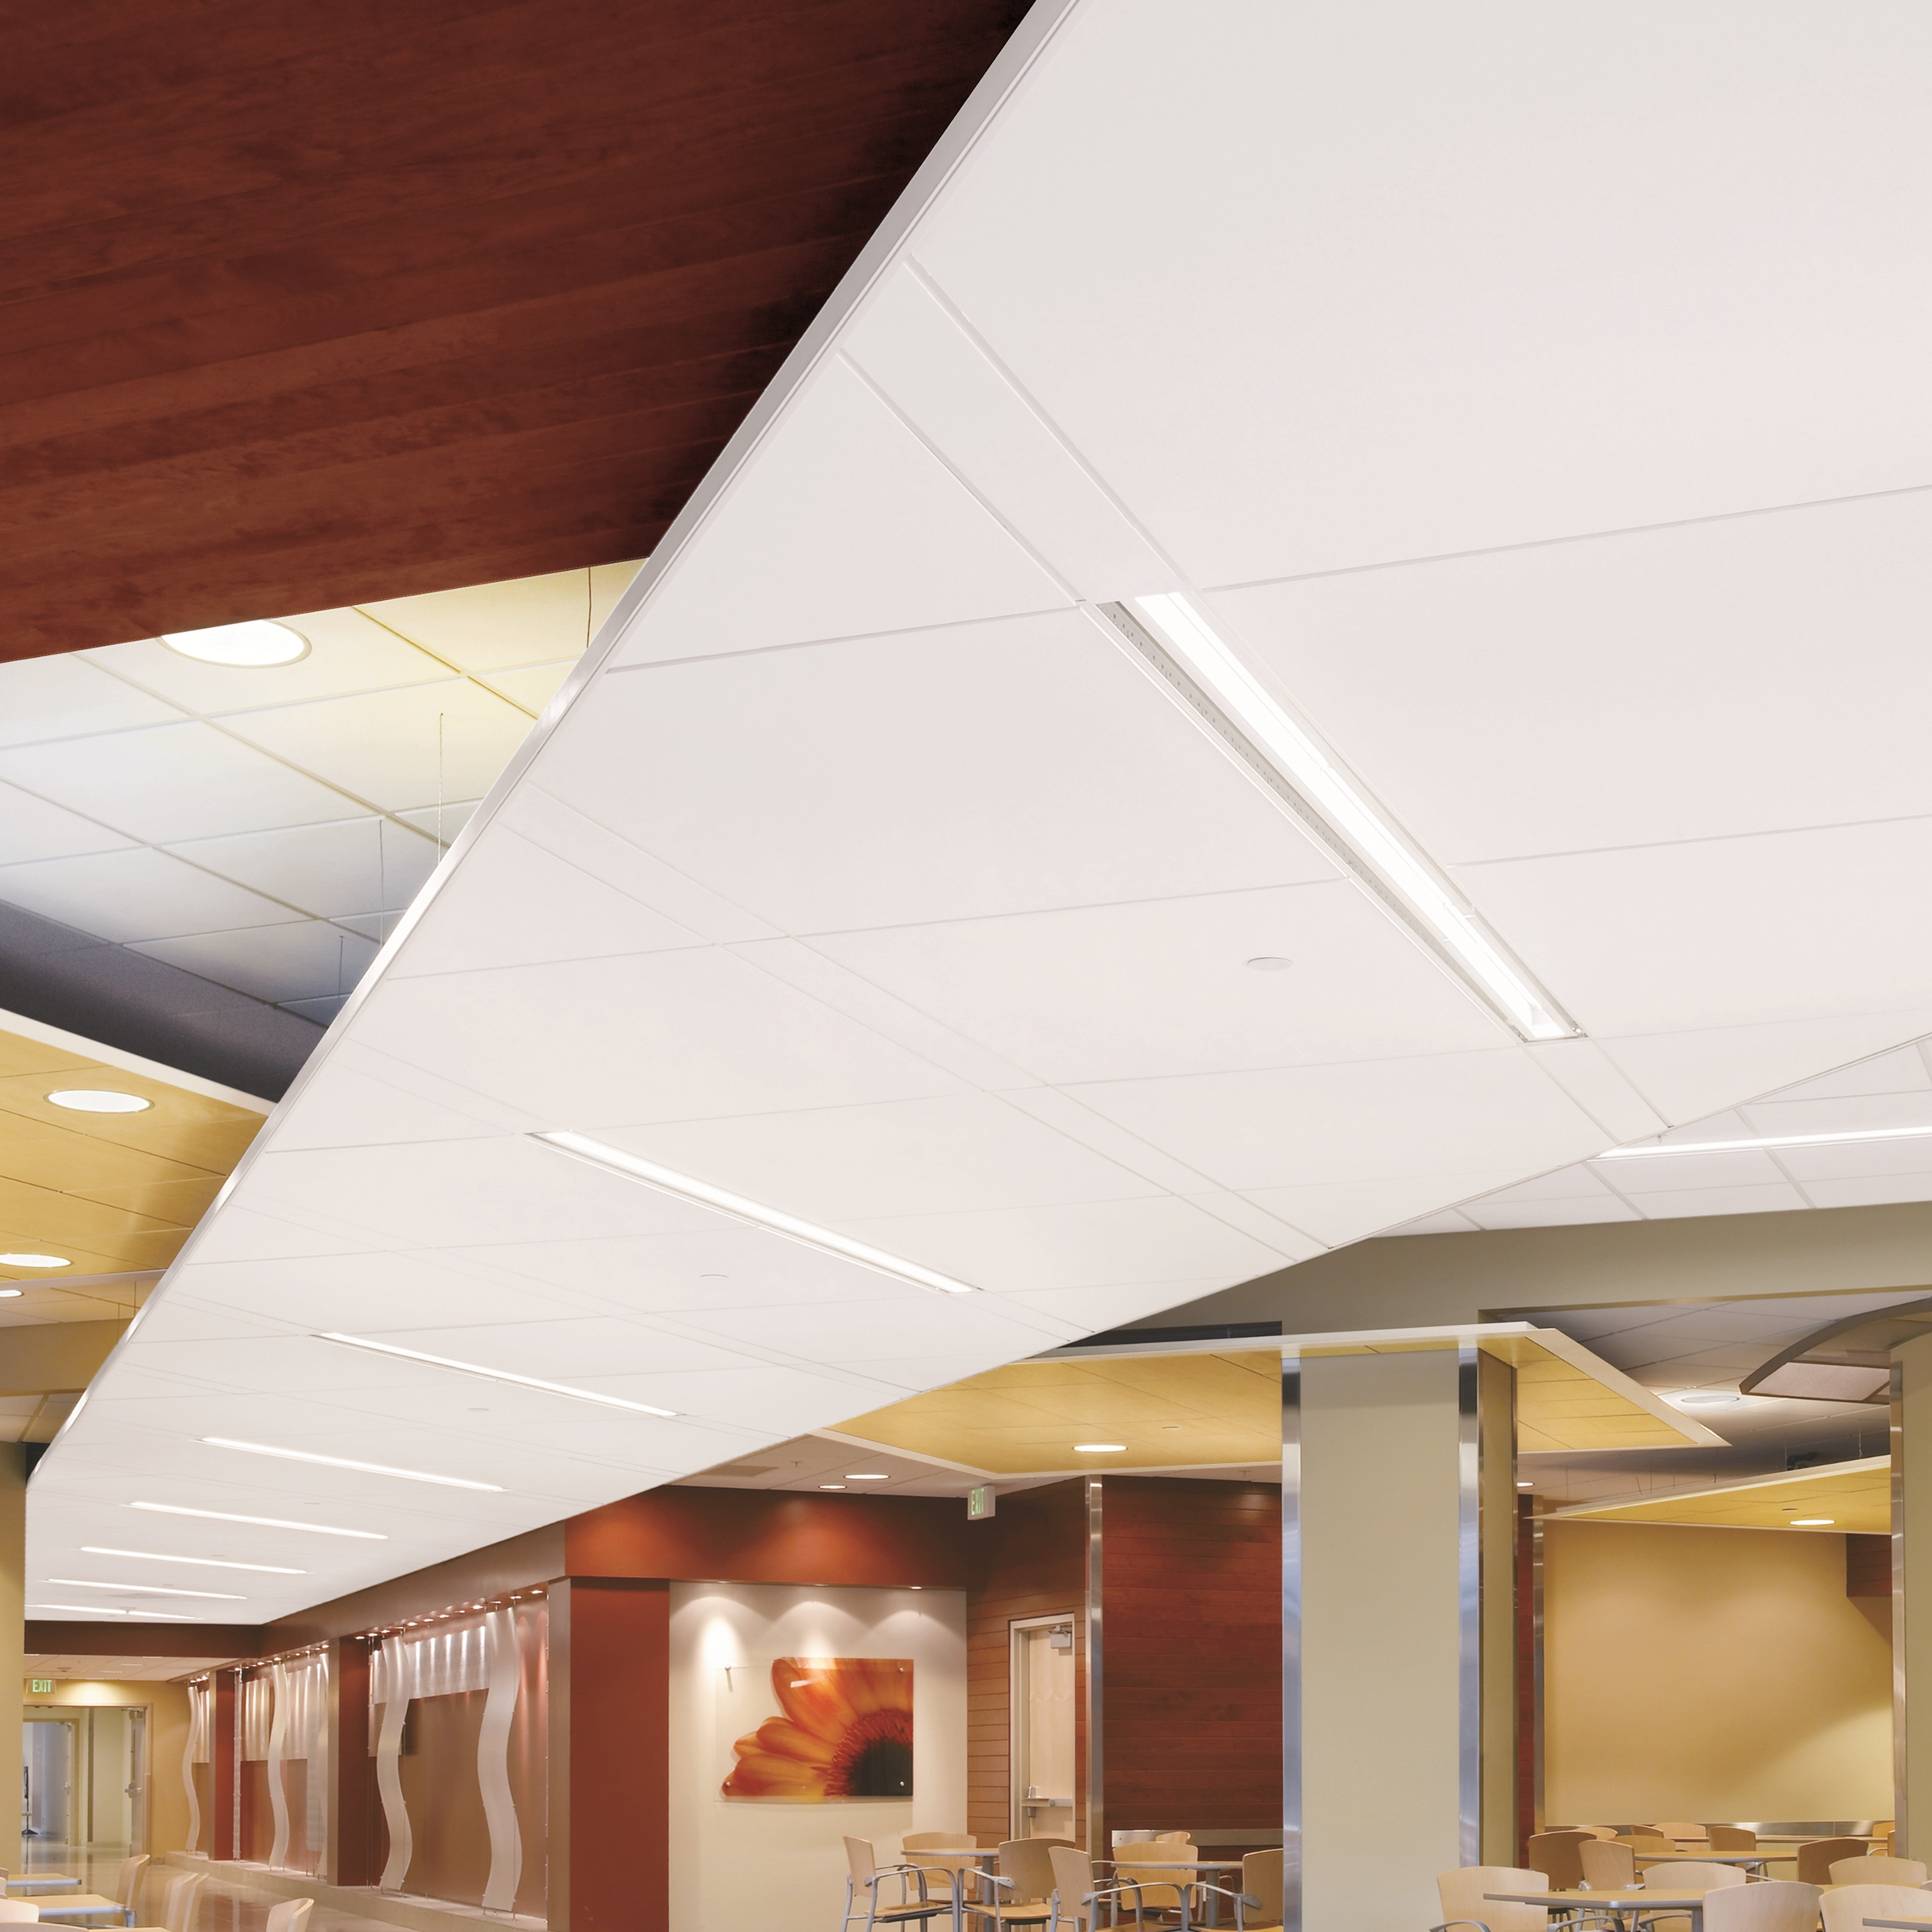 ceilings lightneasy net planks for panels sale tiles suspended ceiling armstrong down drop menards